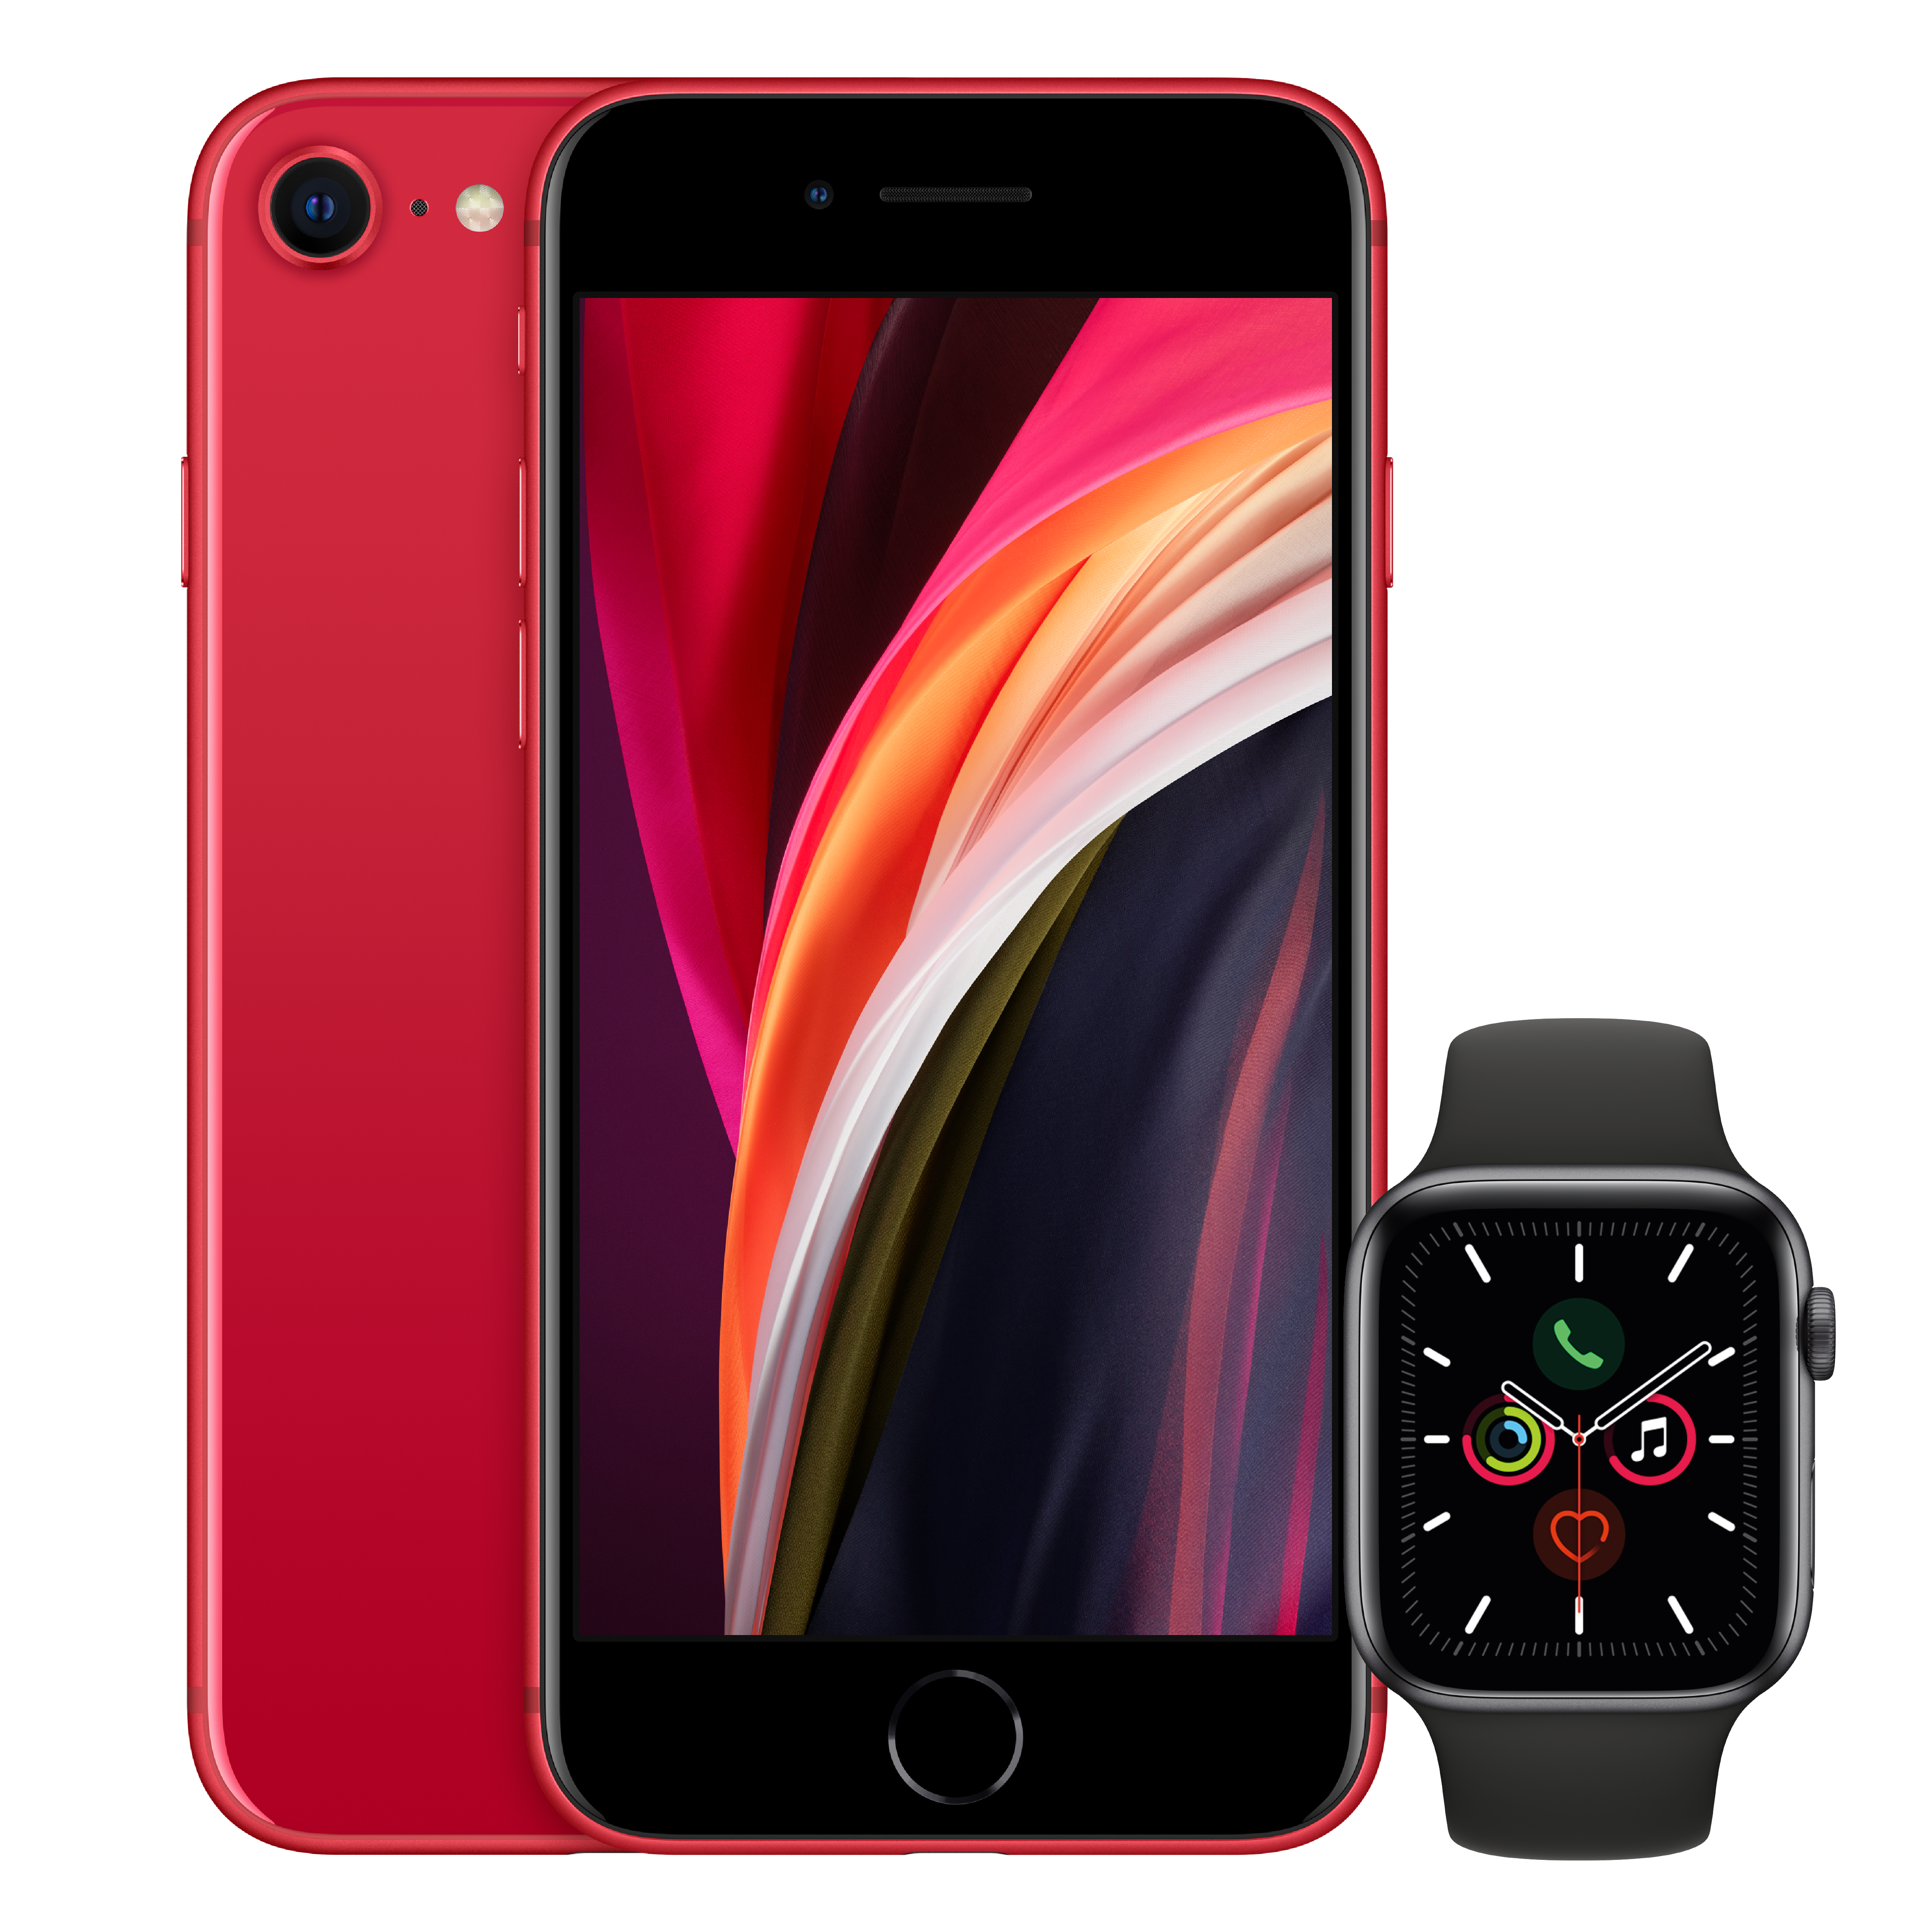 iPhone SE Red and Apple Watch